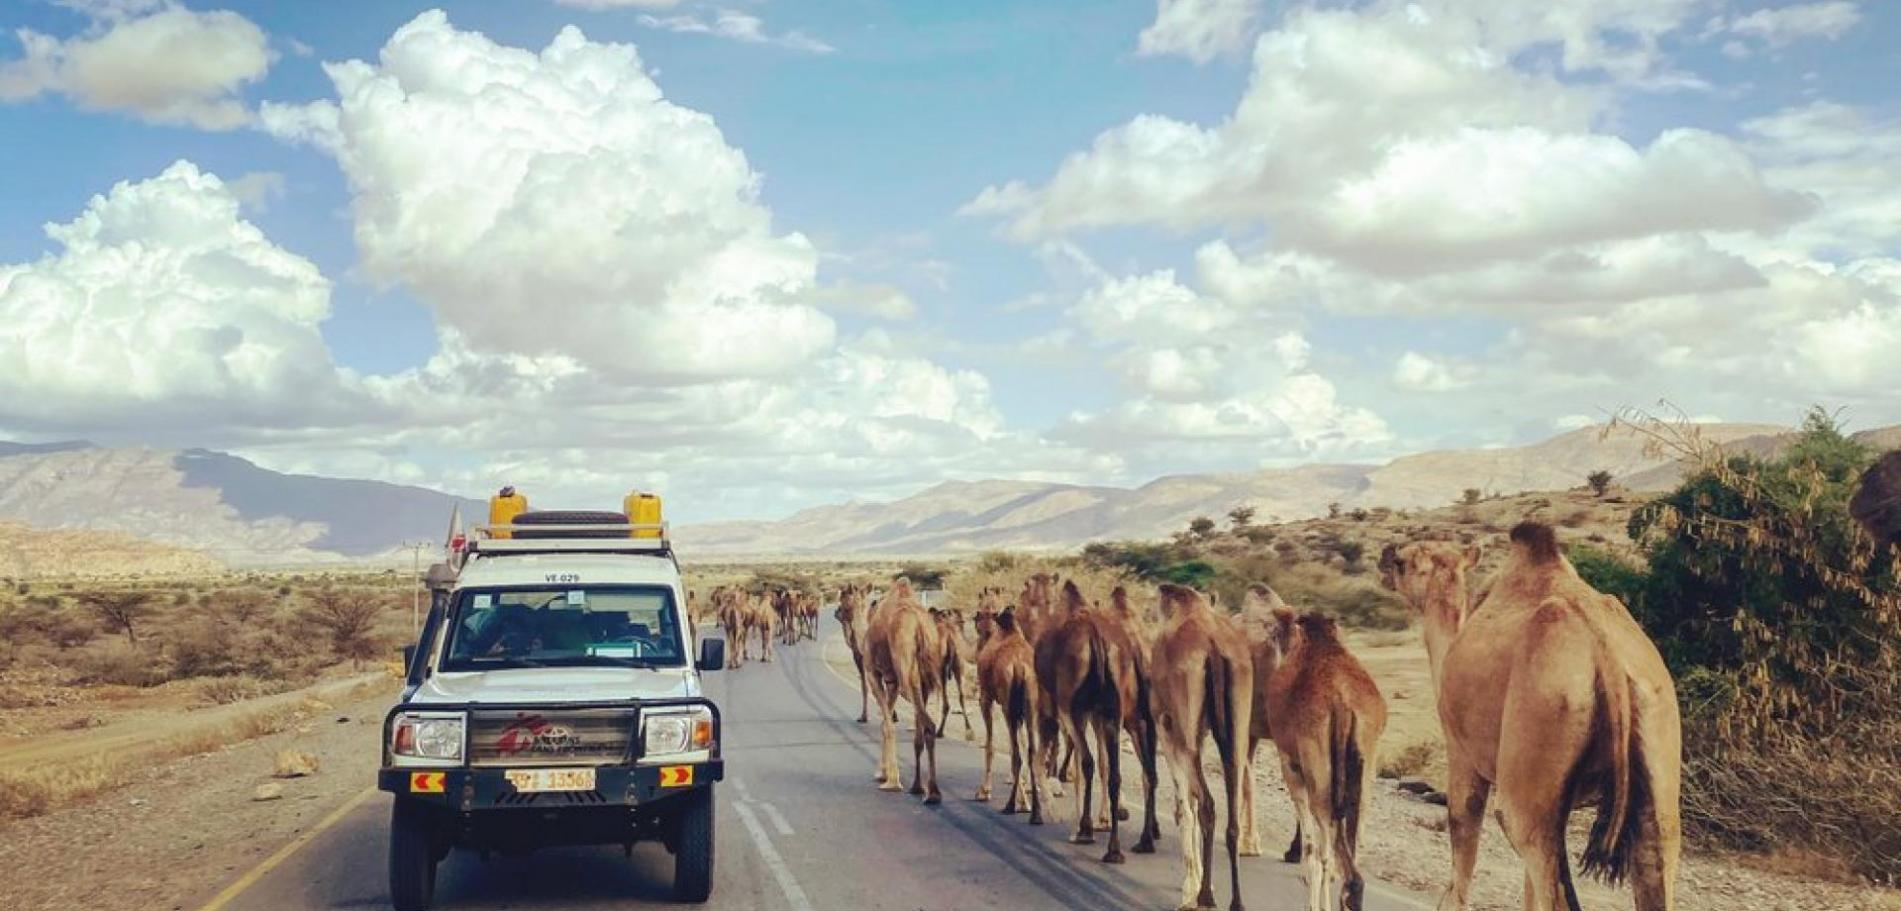 An MSF car crosses a caravan of camels during an assessment in an area of Tigray, in northern Ethiopia